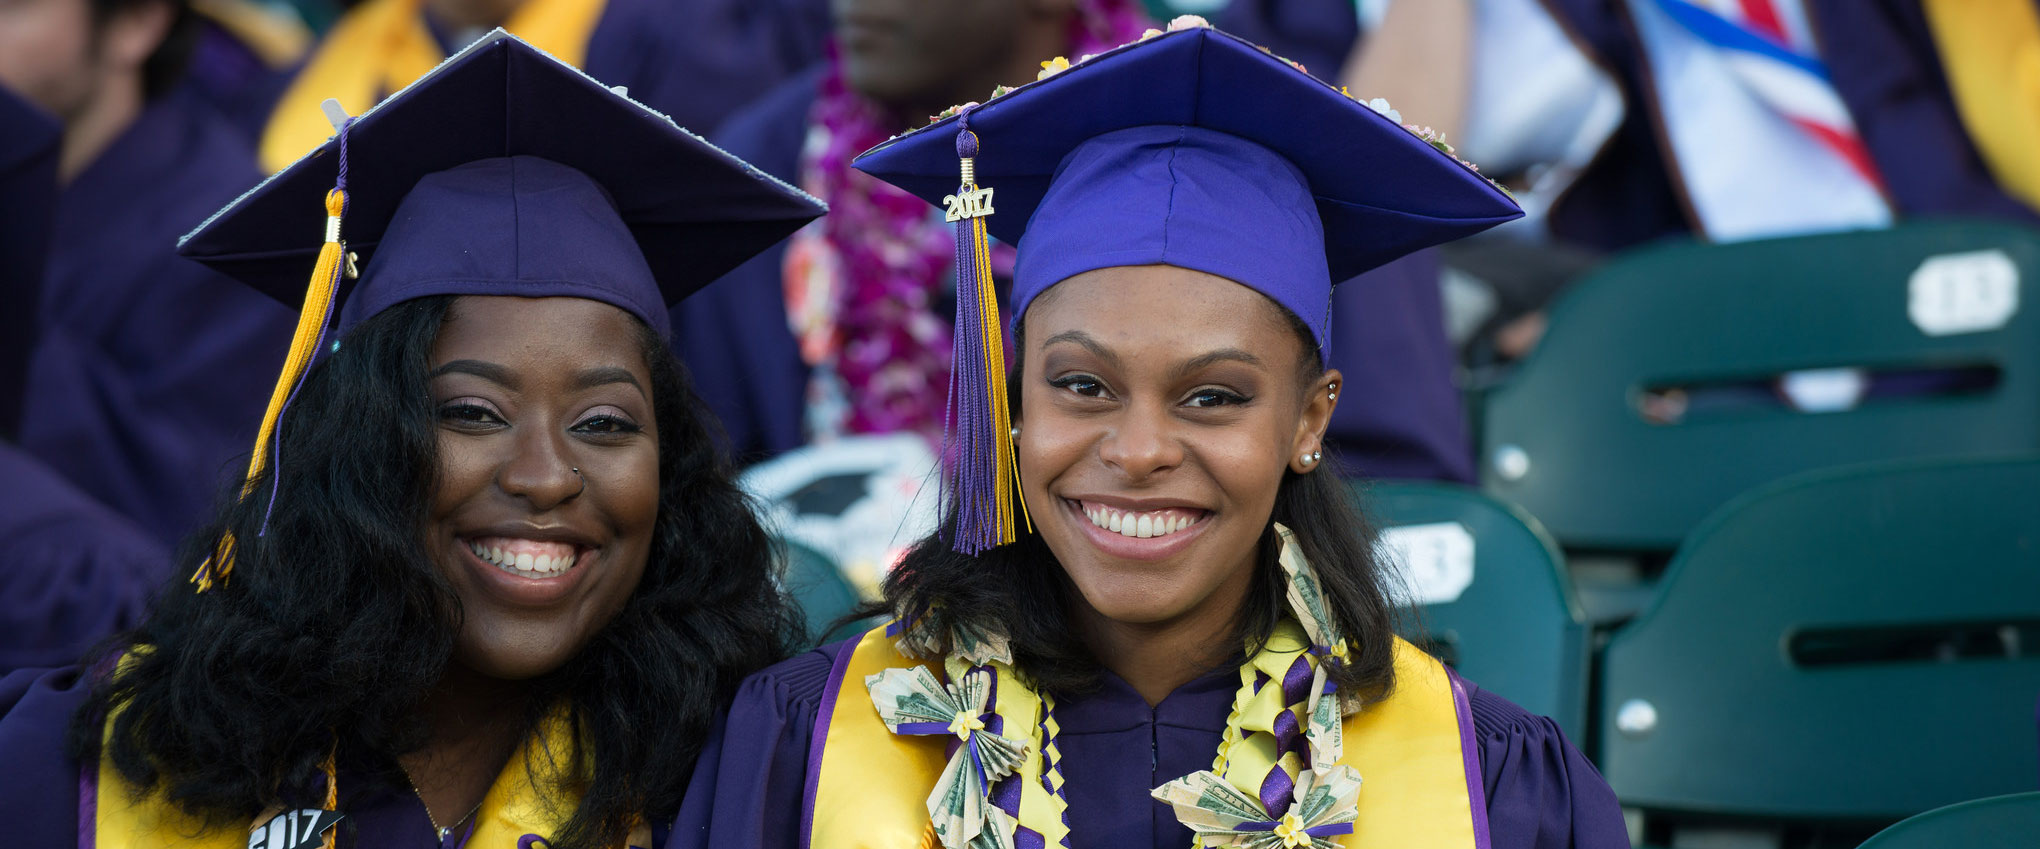 Two female students at graduation